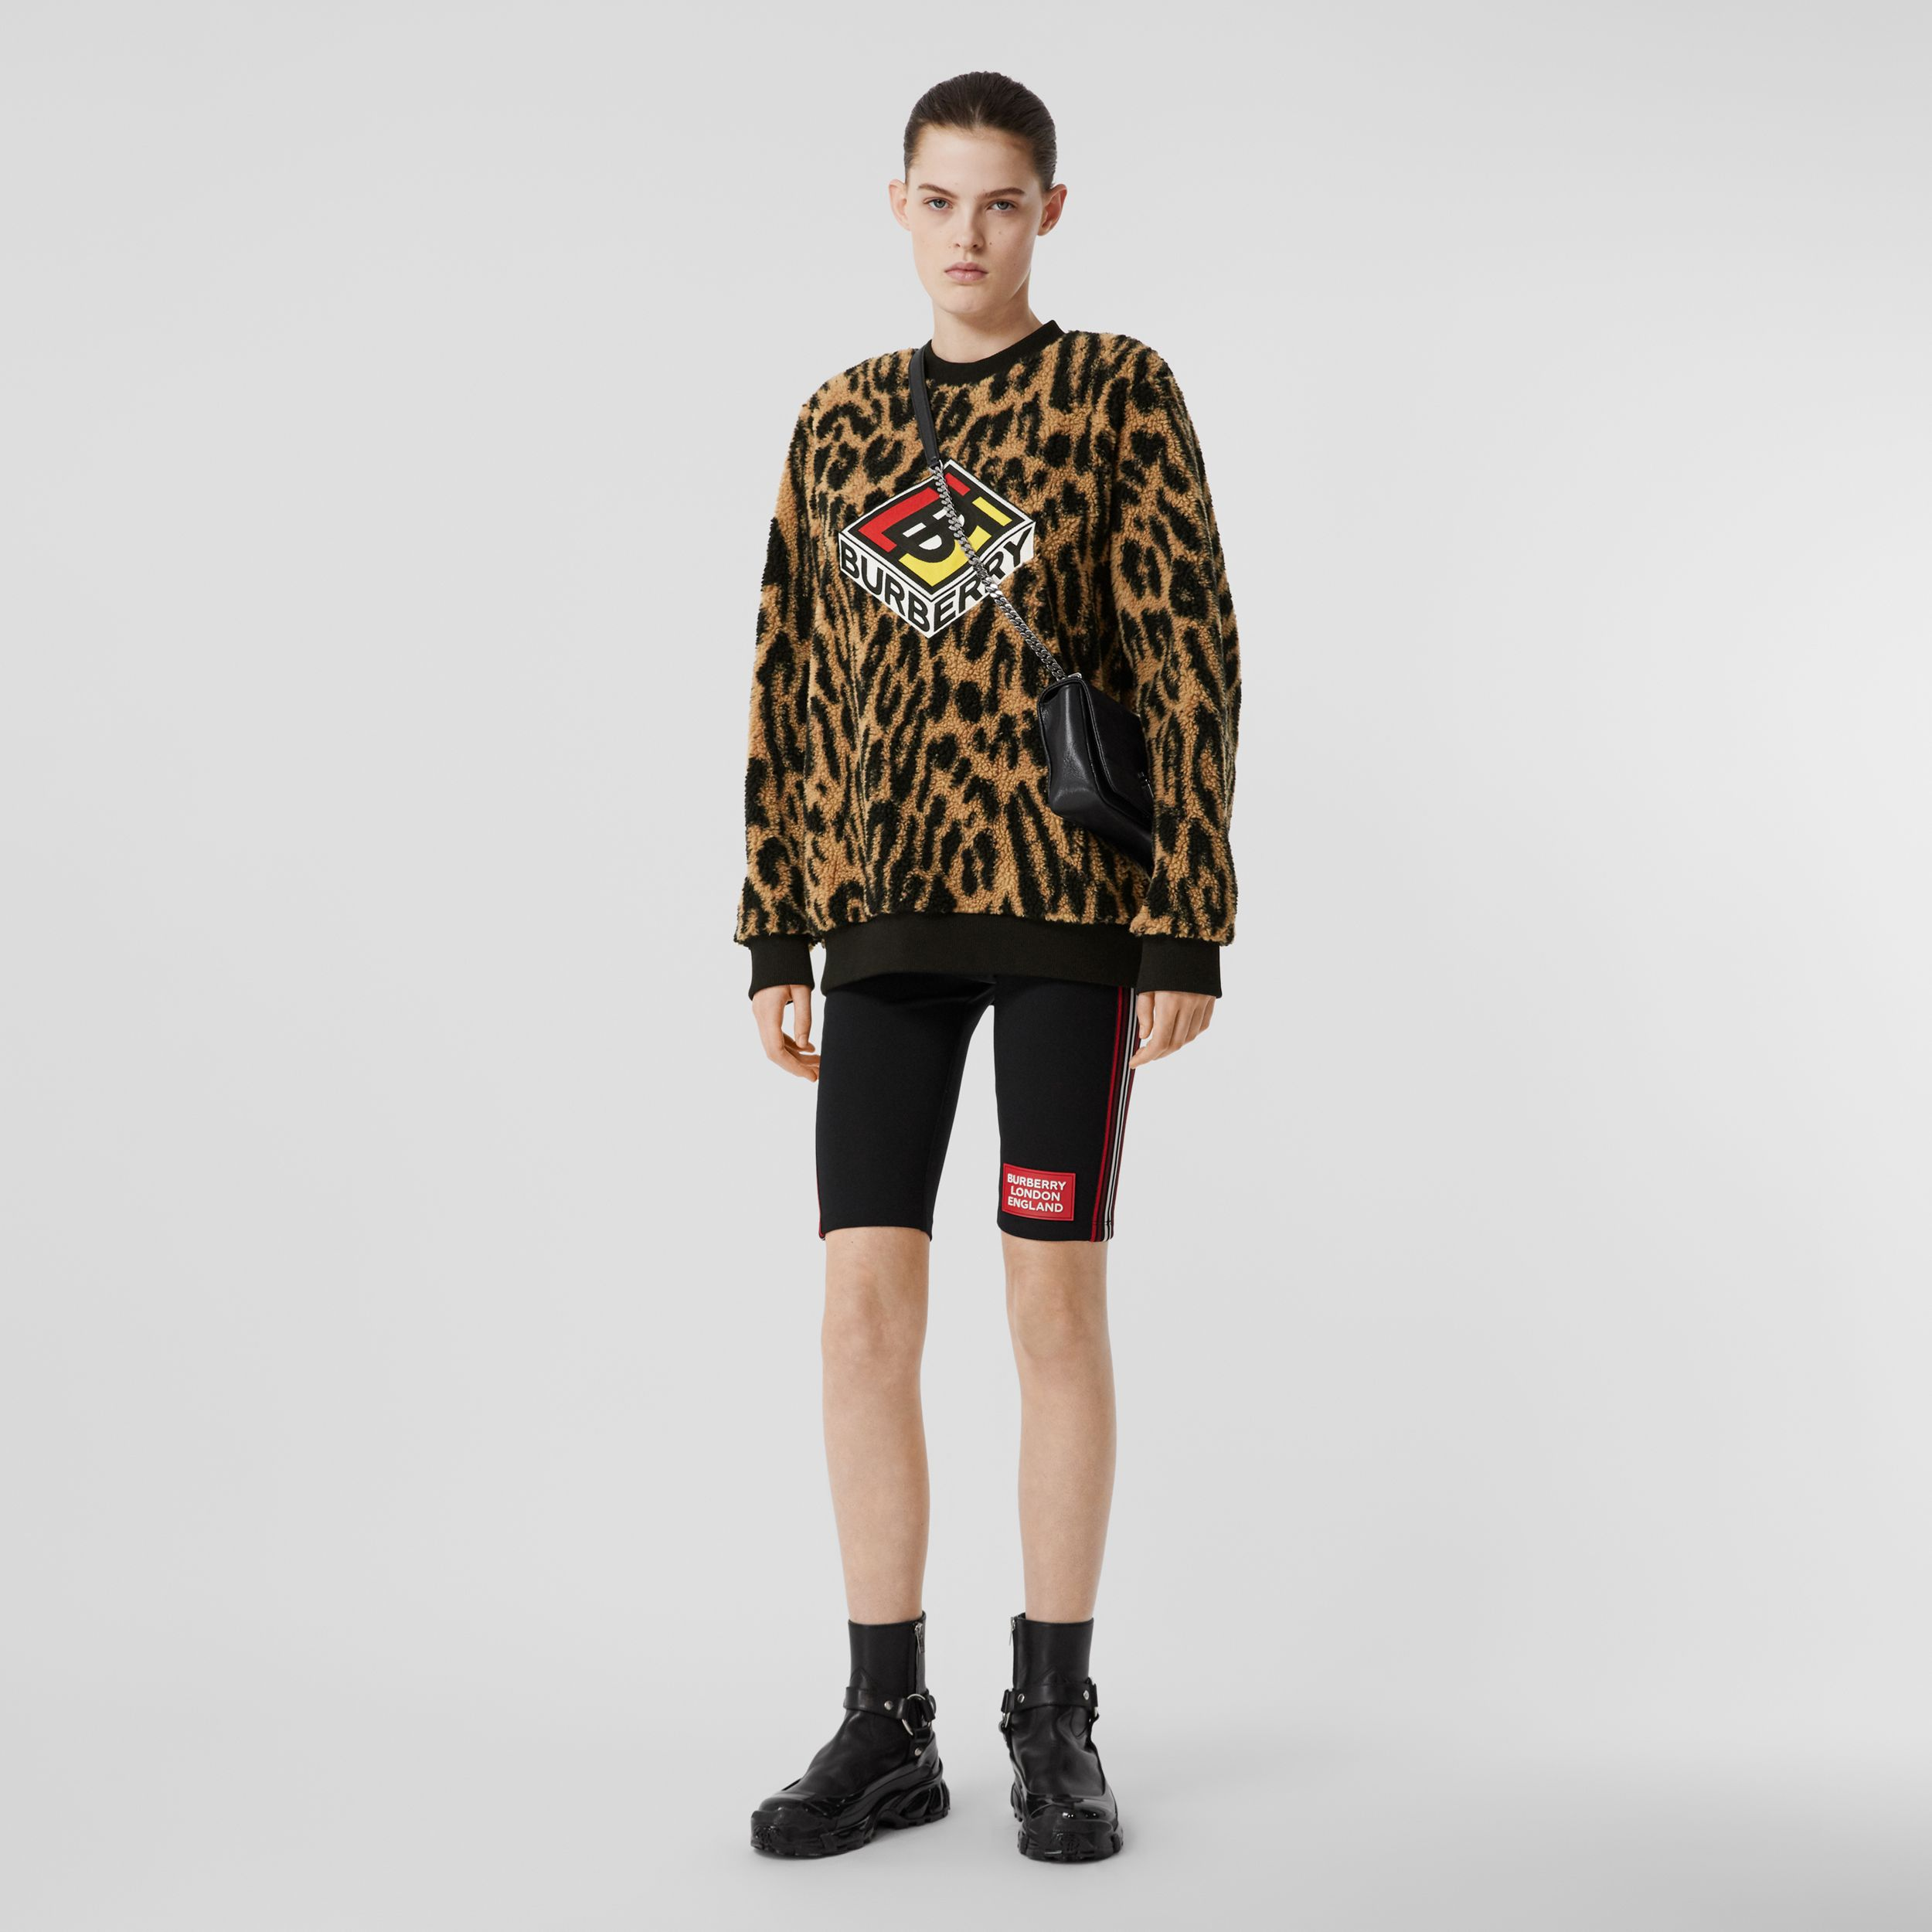 Logo Graphic Leopard Fleece Jacquard Sweatshirt in Dark Mustard - Women | Burberry - 1